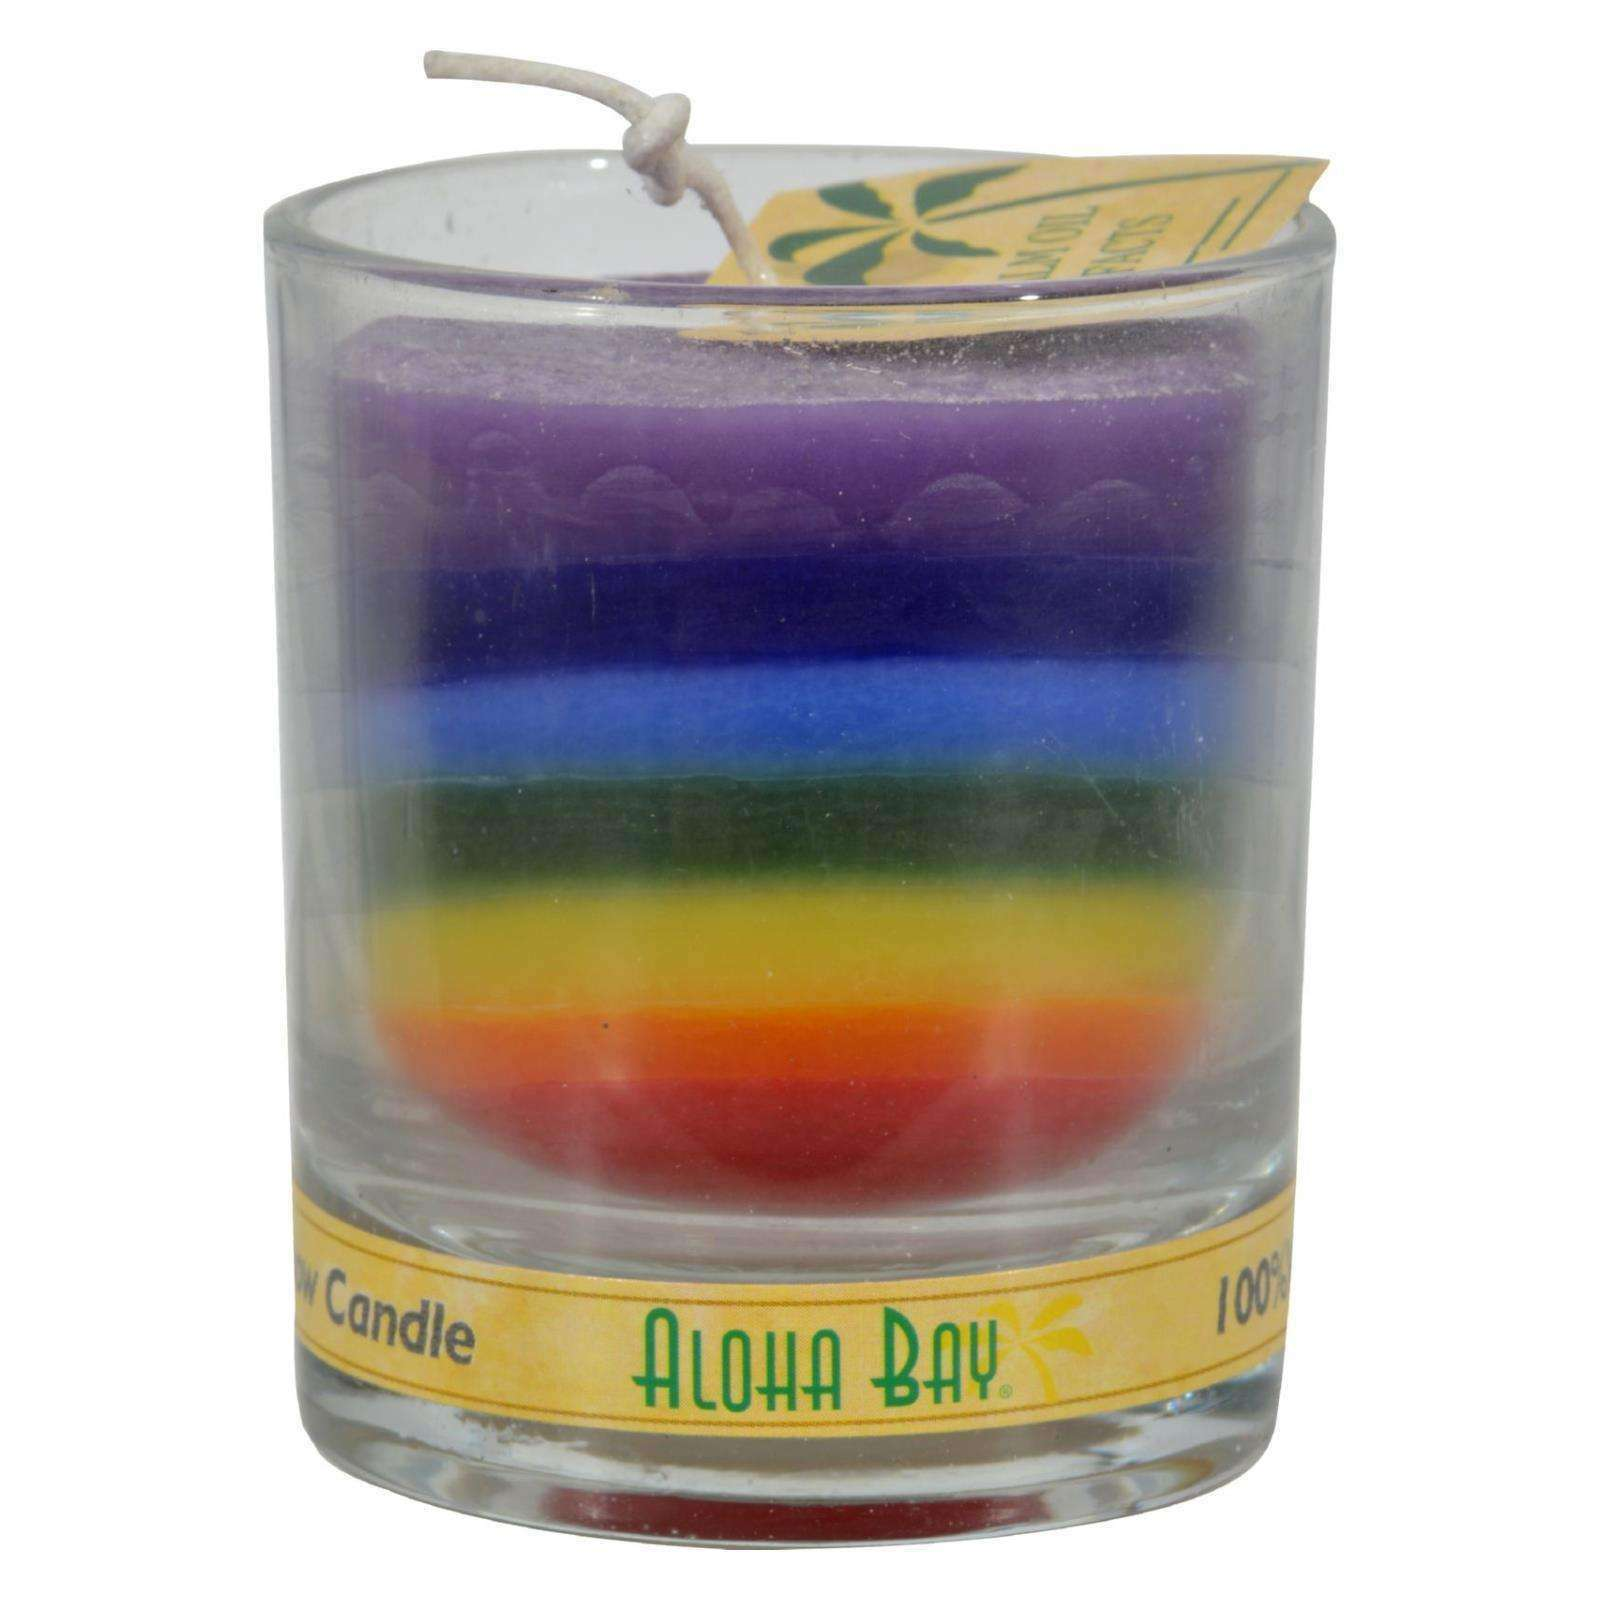 Aloha Bay - Votive Jar Candle - Unscented Rainbow - Case Of 12 - 2.5 Oz - BeeGreen